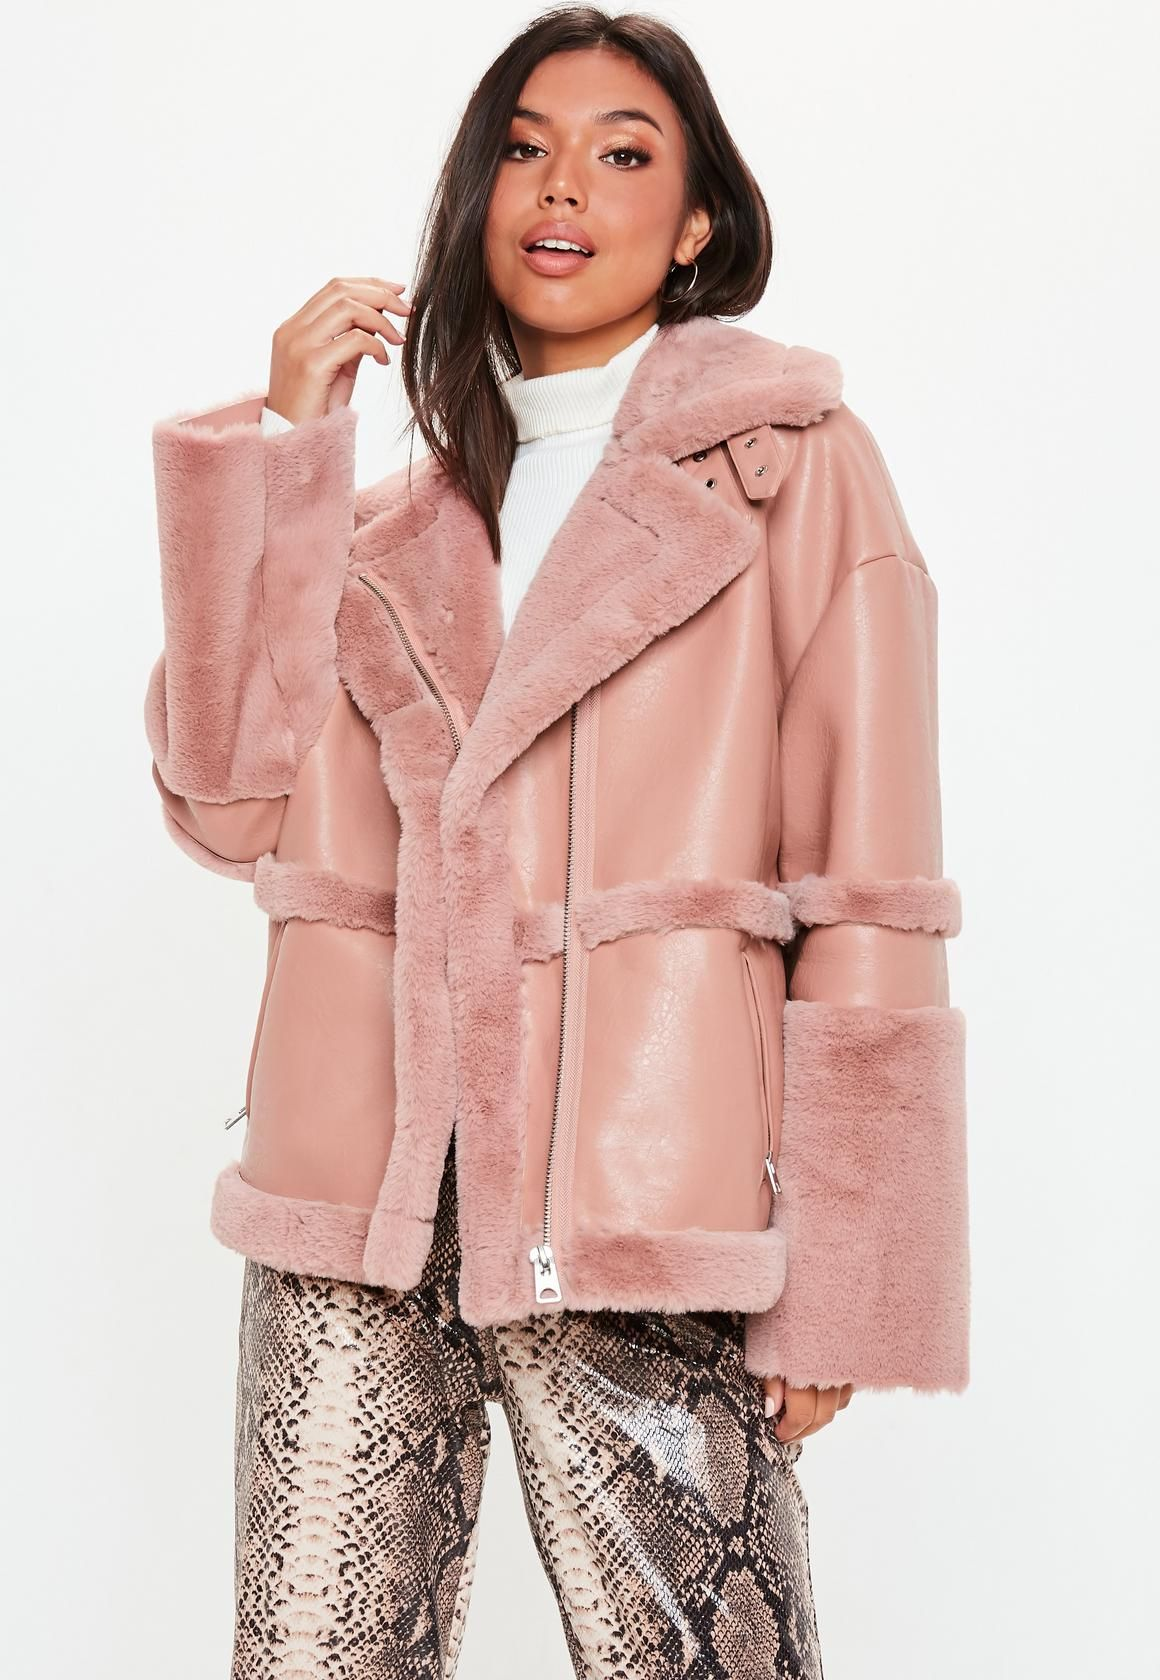 30690d9565 Women's Winter Clothes and Fashion. Missguided - Pink Faux Fur Aviator  Jacket